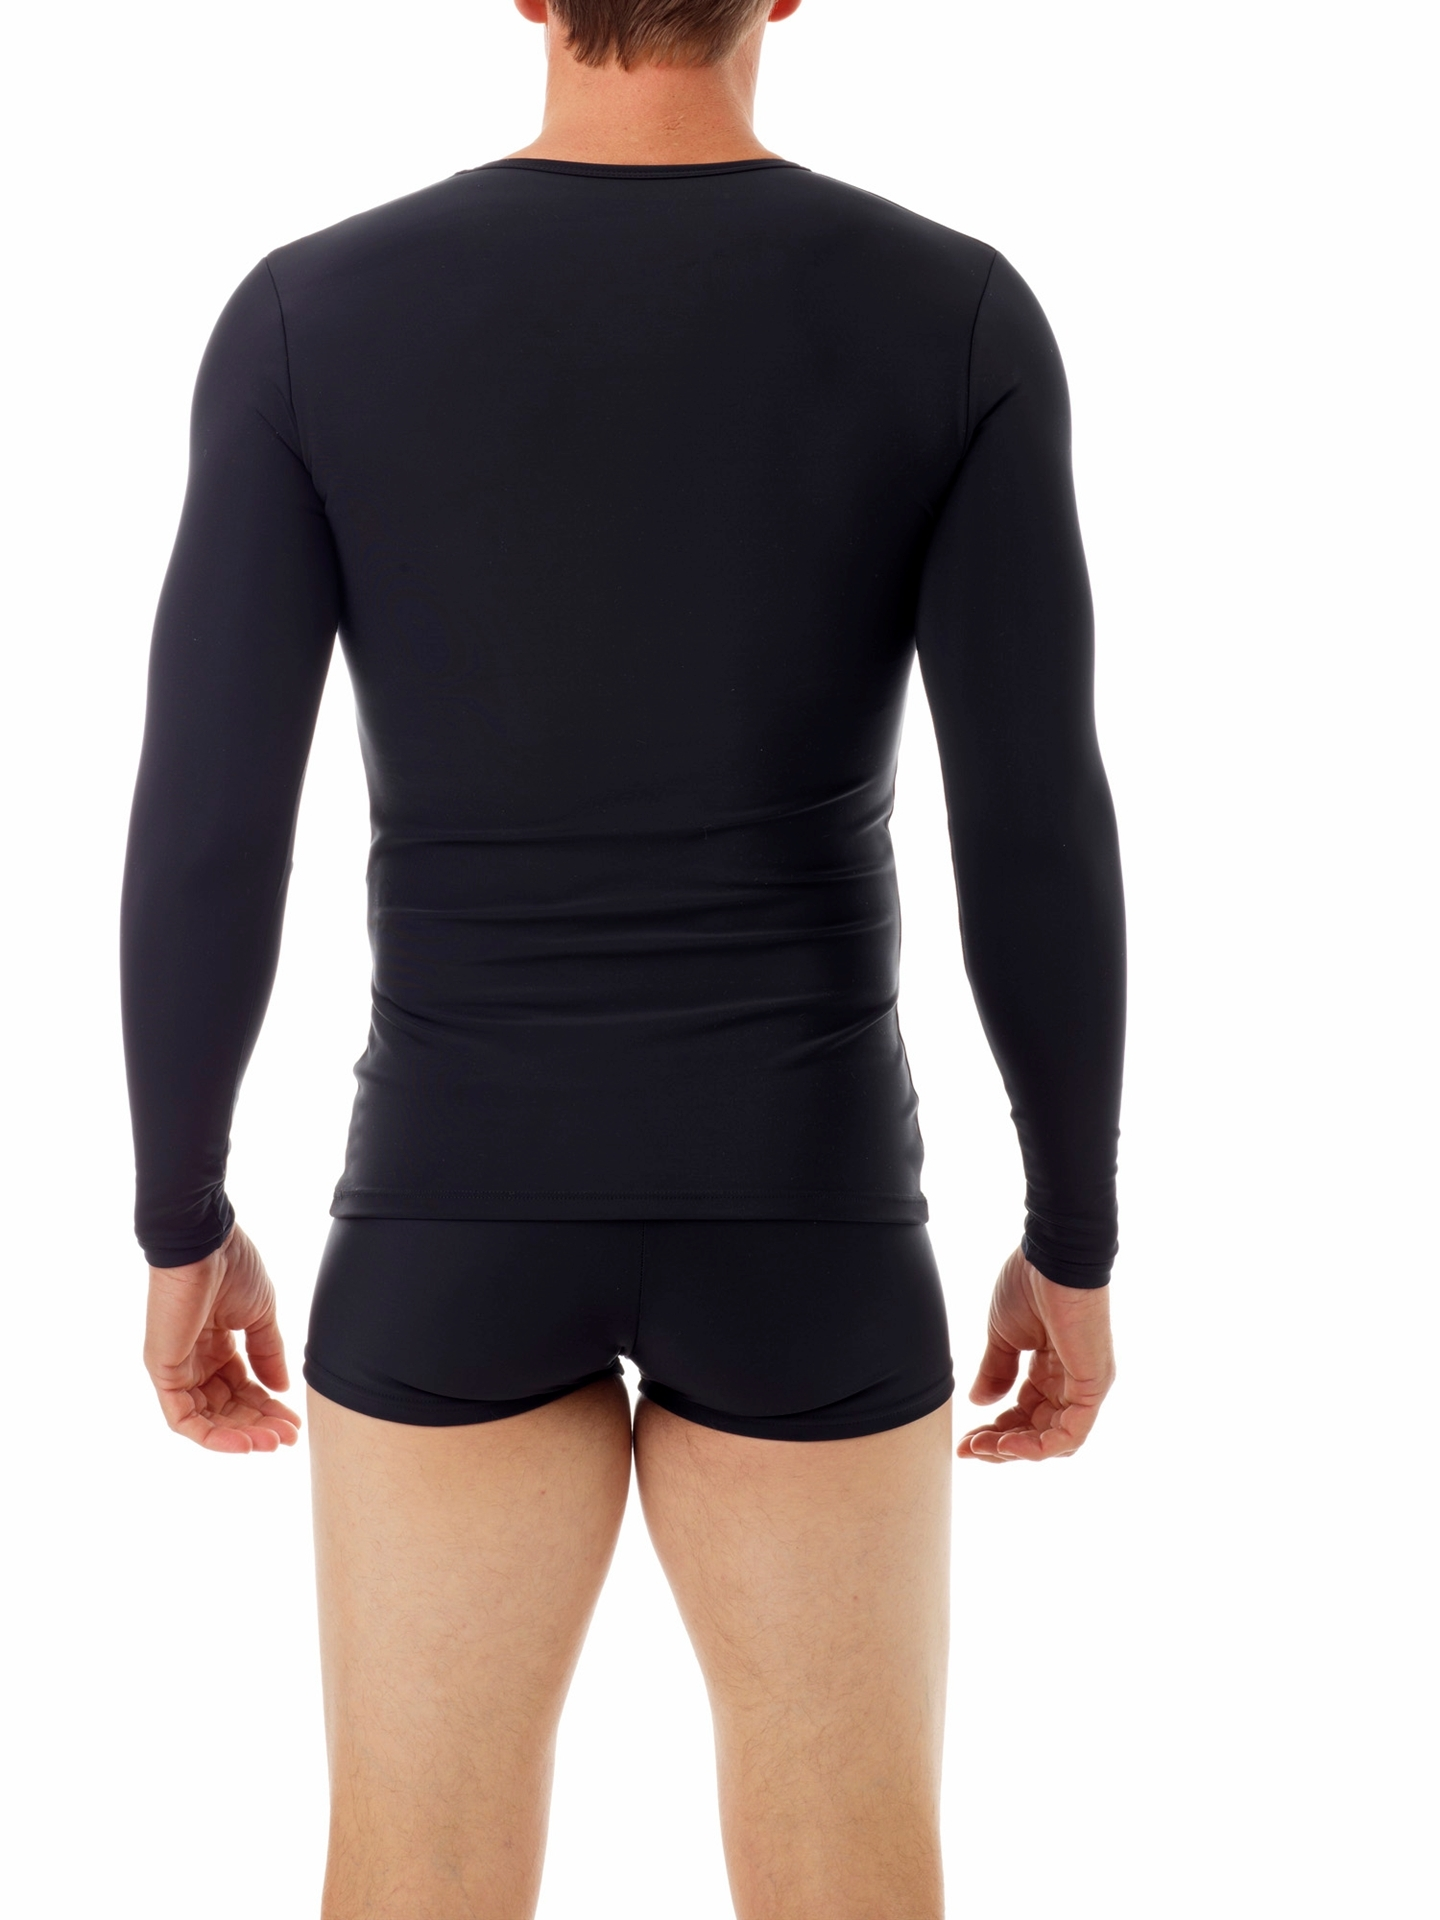 Picture of Microfiber Compression Crew Neck T-shirt with Long Sleeves